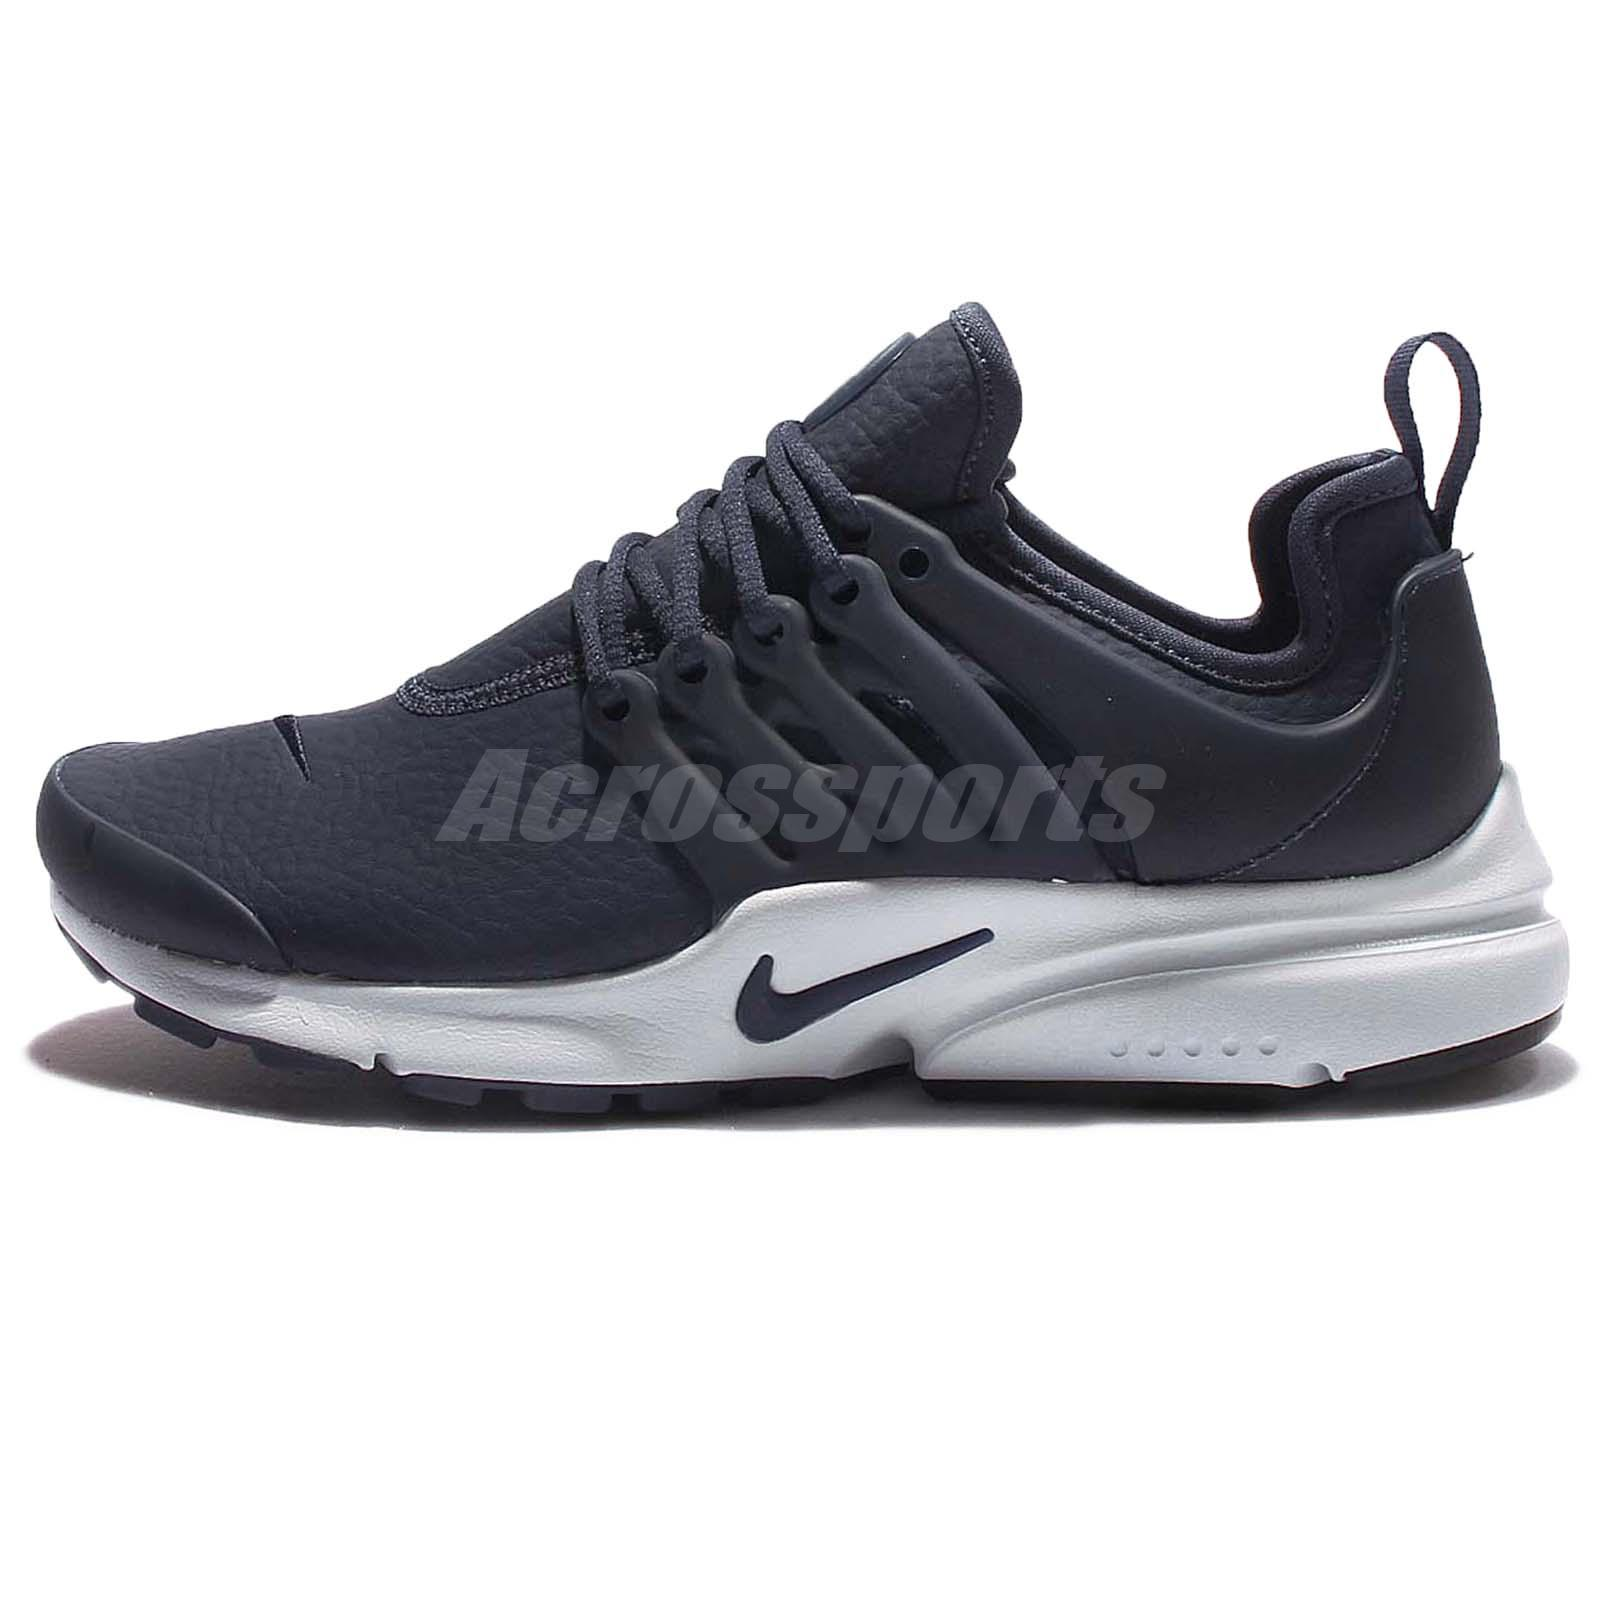 knowledge nike 56 reviews from nike employees about nike culture, salaries, benefits,  i have  learnt a huge amount of product knowledge of the brand and how to work with.